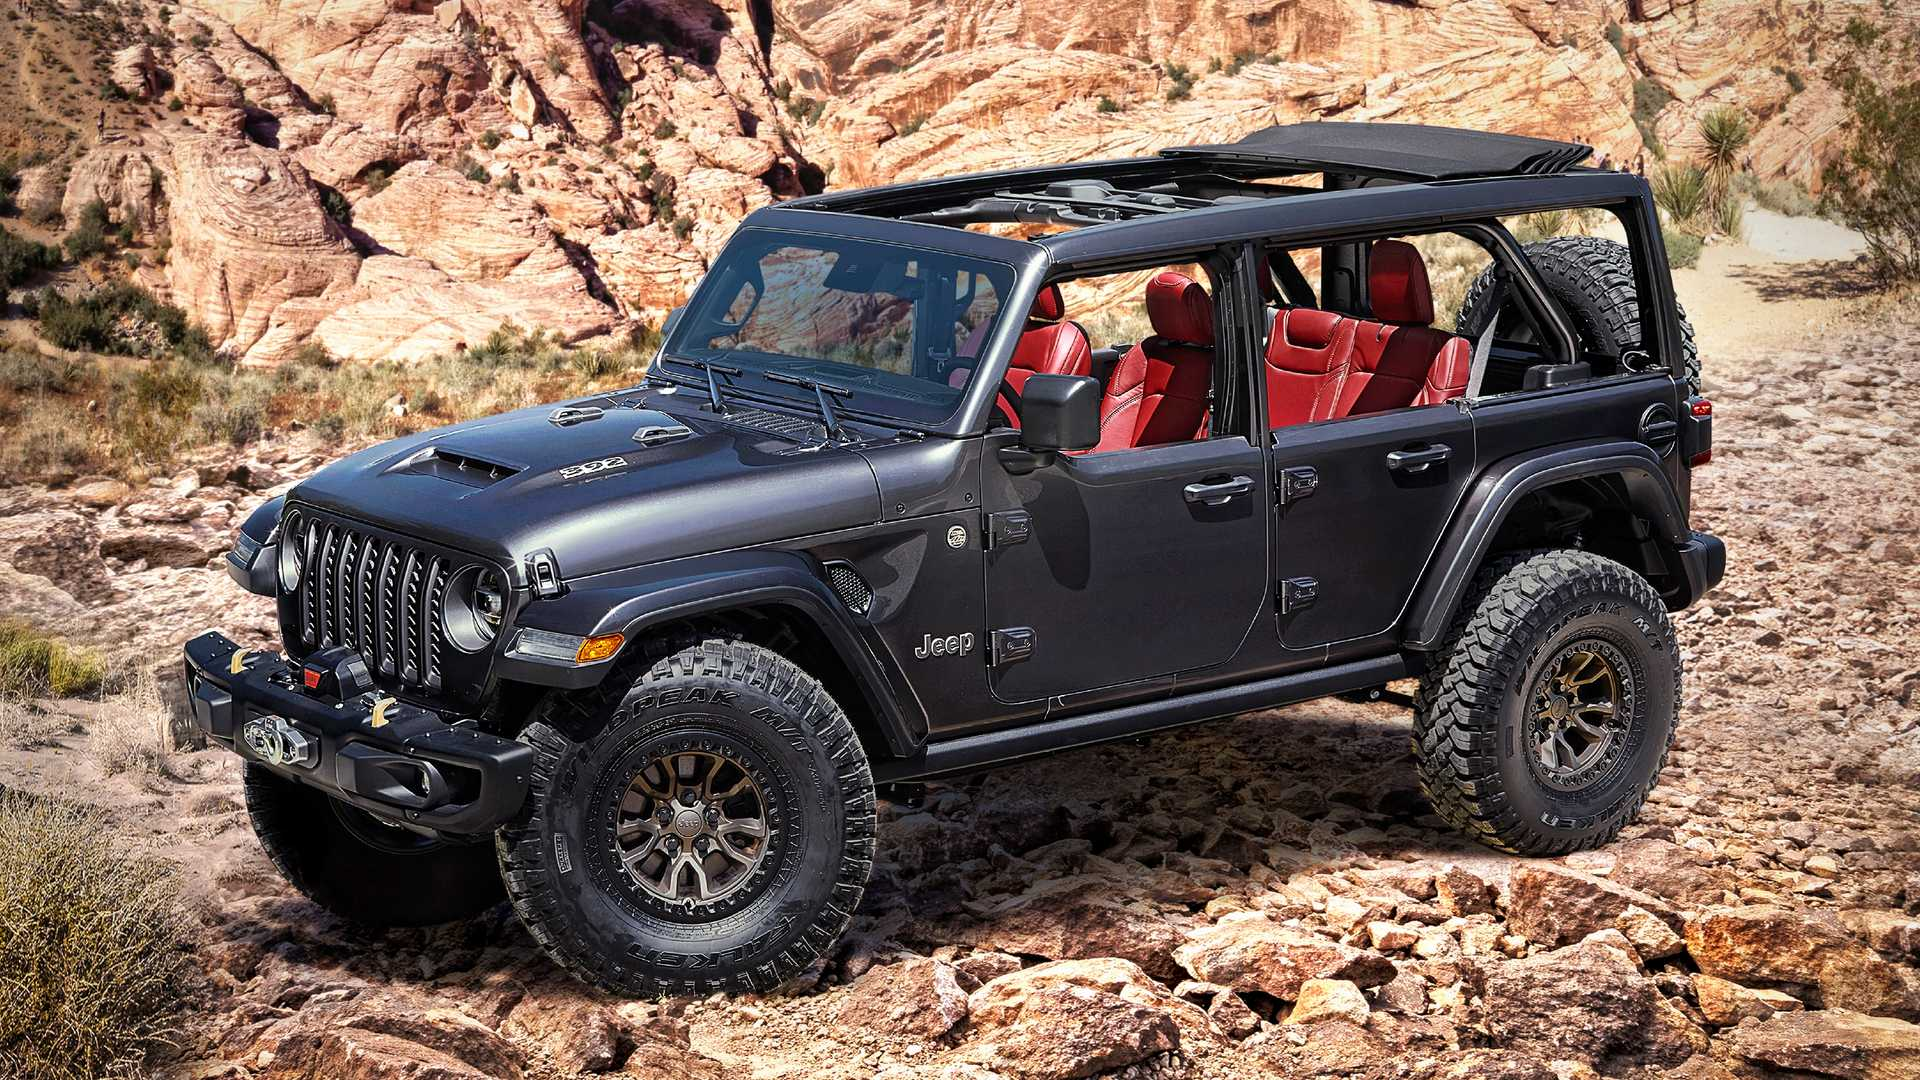 V8-POWERED JEEP WRANGLER RUBICON 392 CONCEPT REVEALED ON BRONCO'S BIG DAY